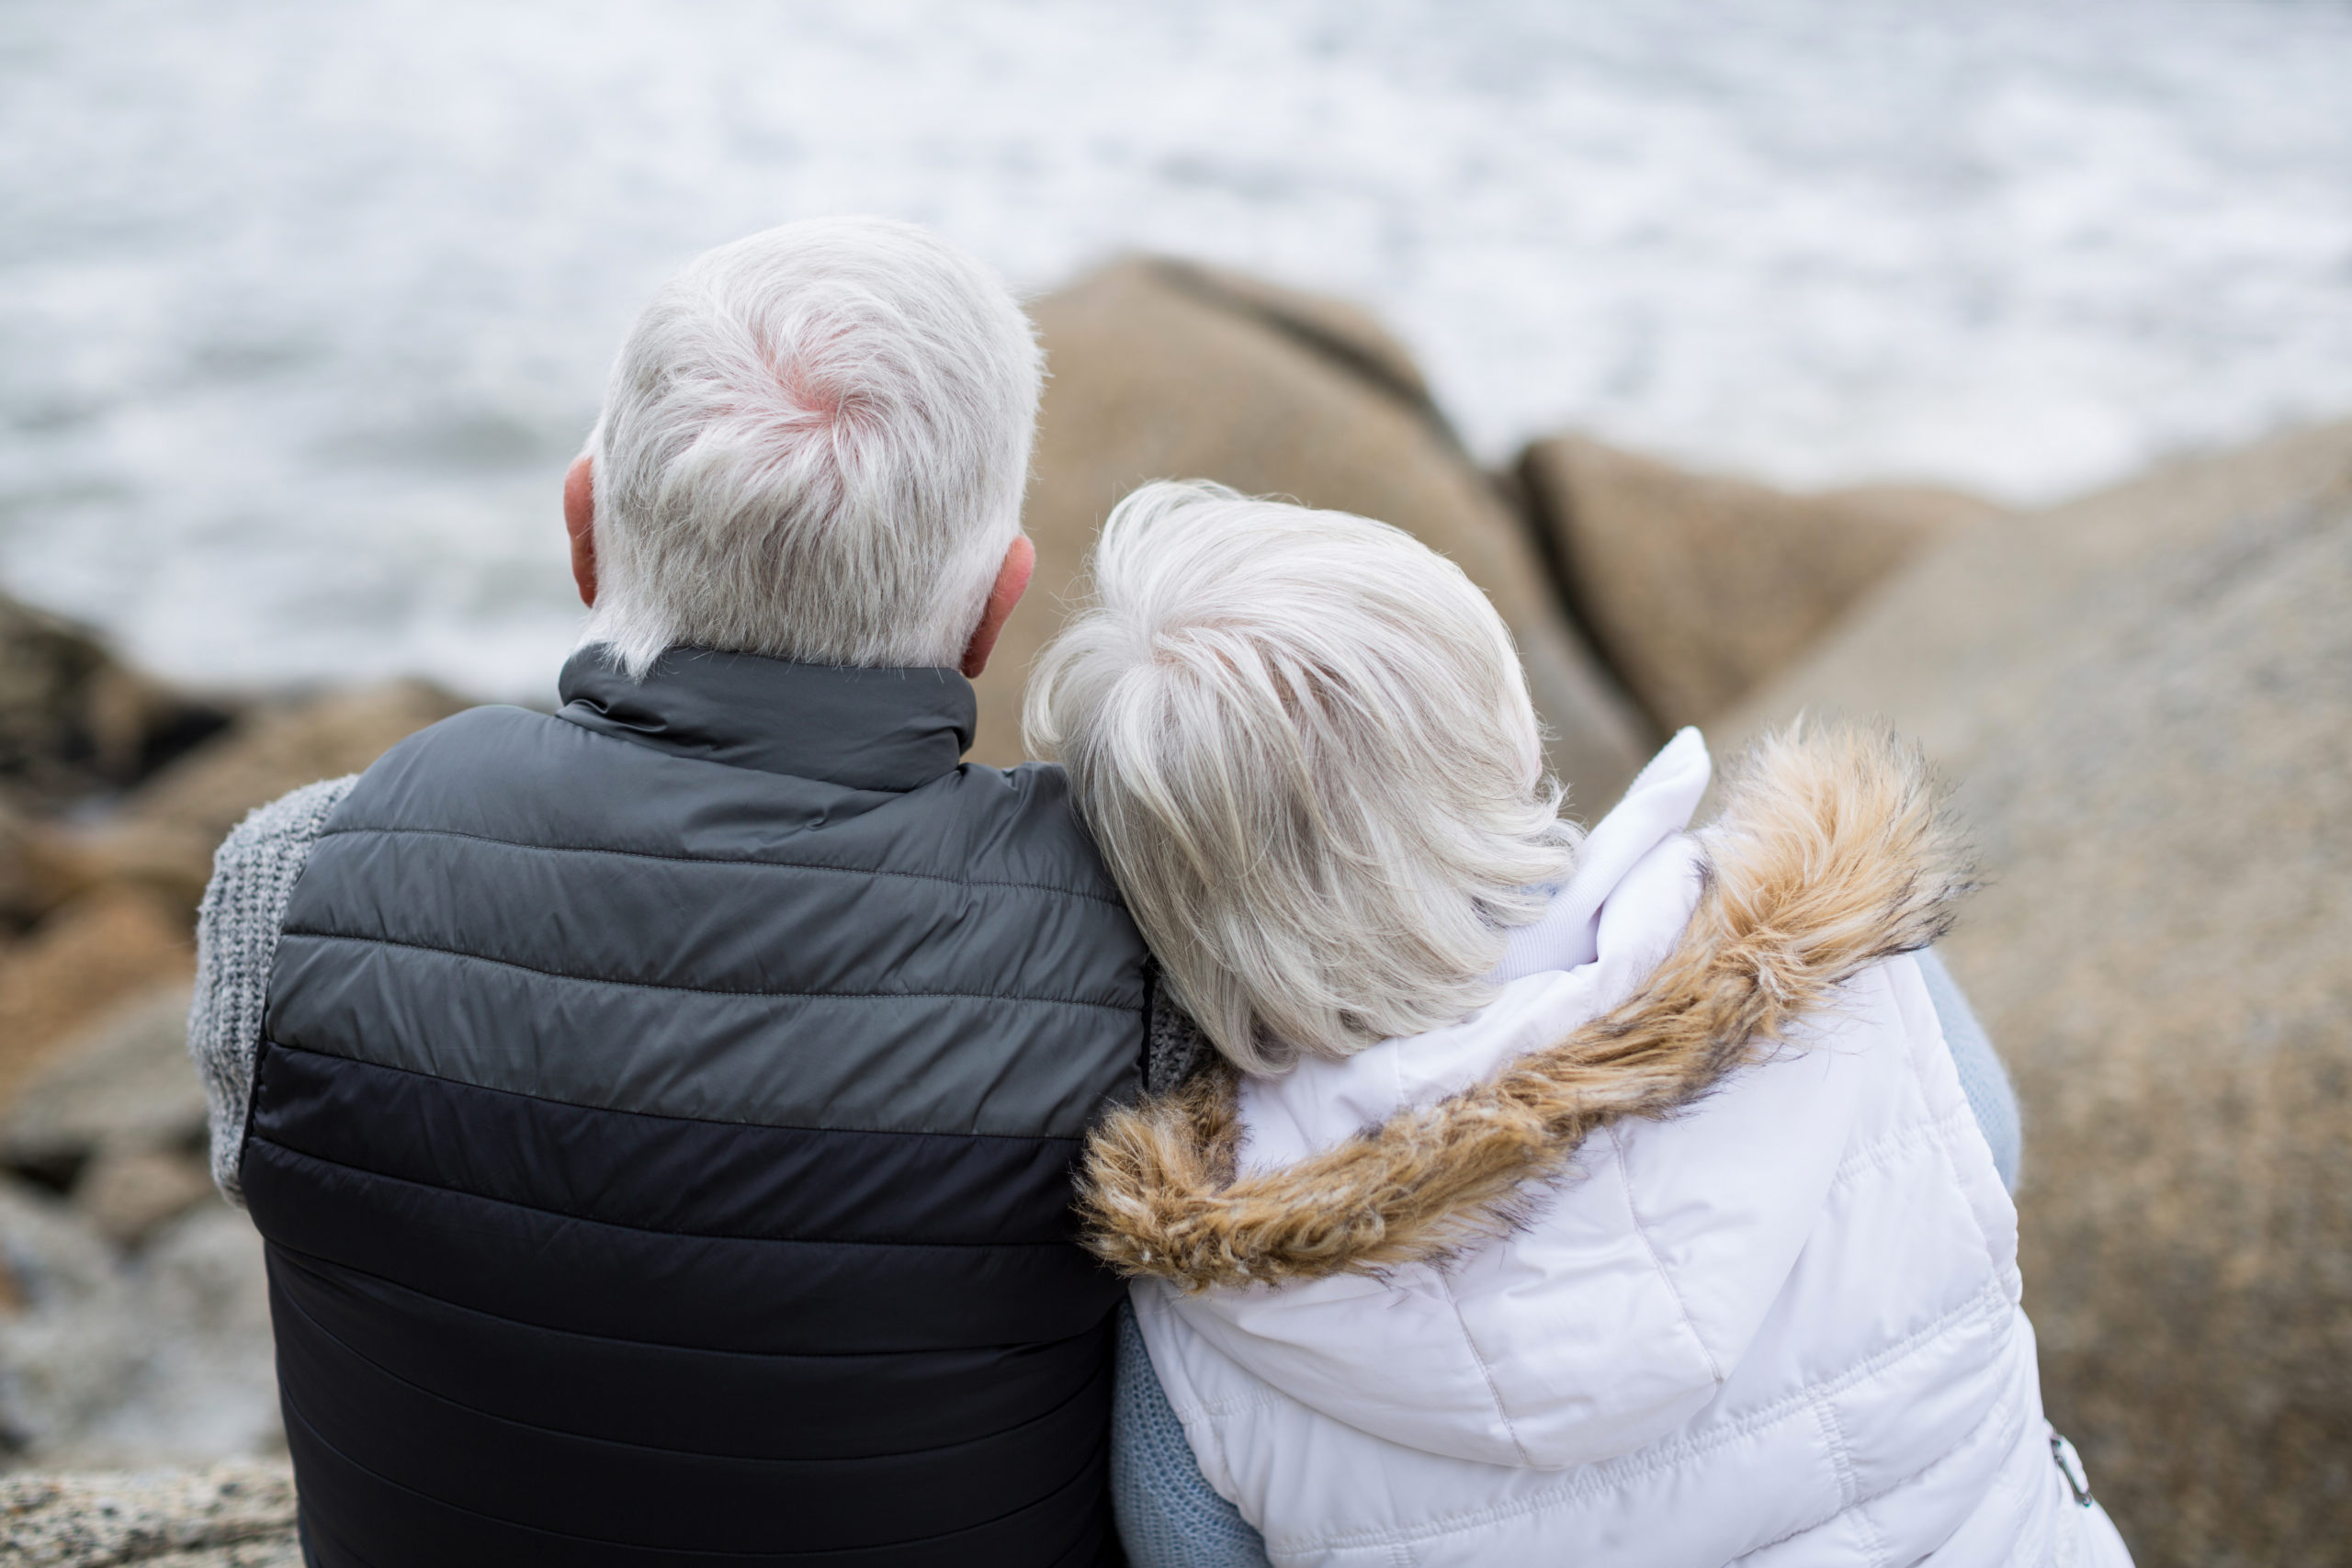 andropause, male menopause, what you need to know